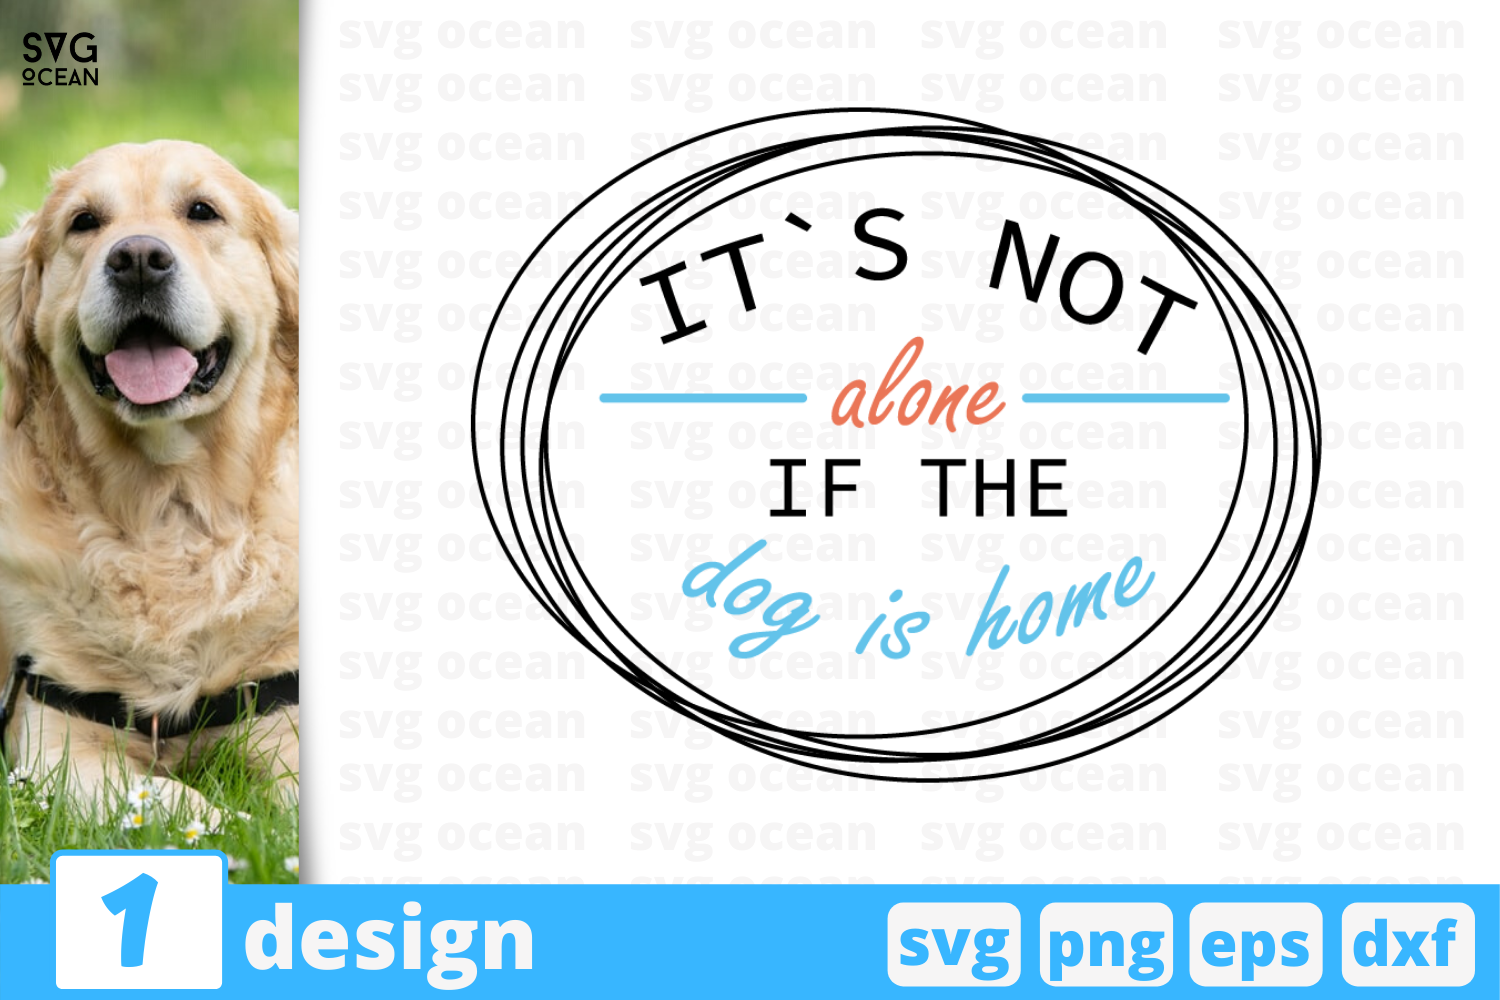 Download Free It S Not Alone Graphic By Svgocean Creative Fabrica SVG Cut Files